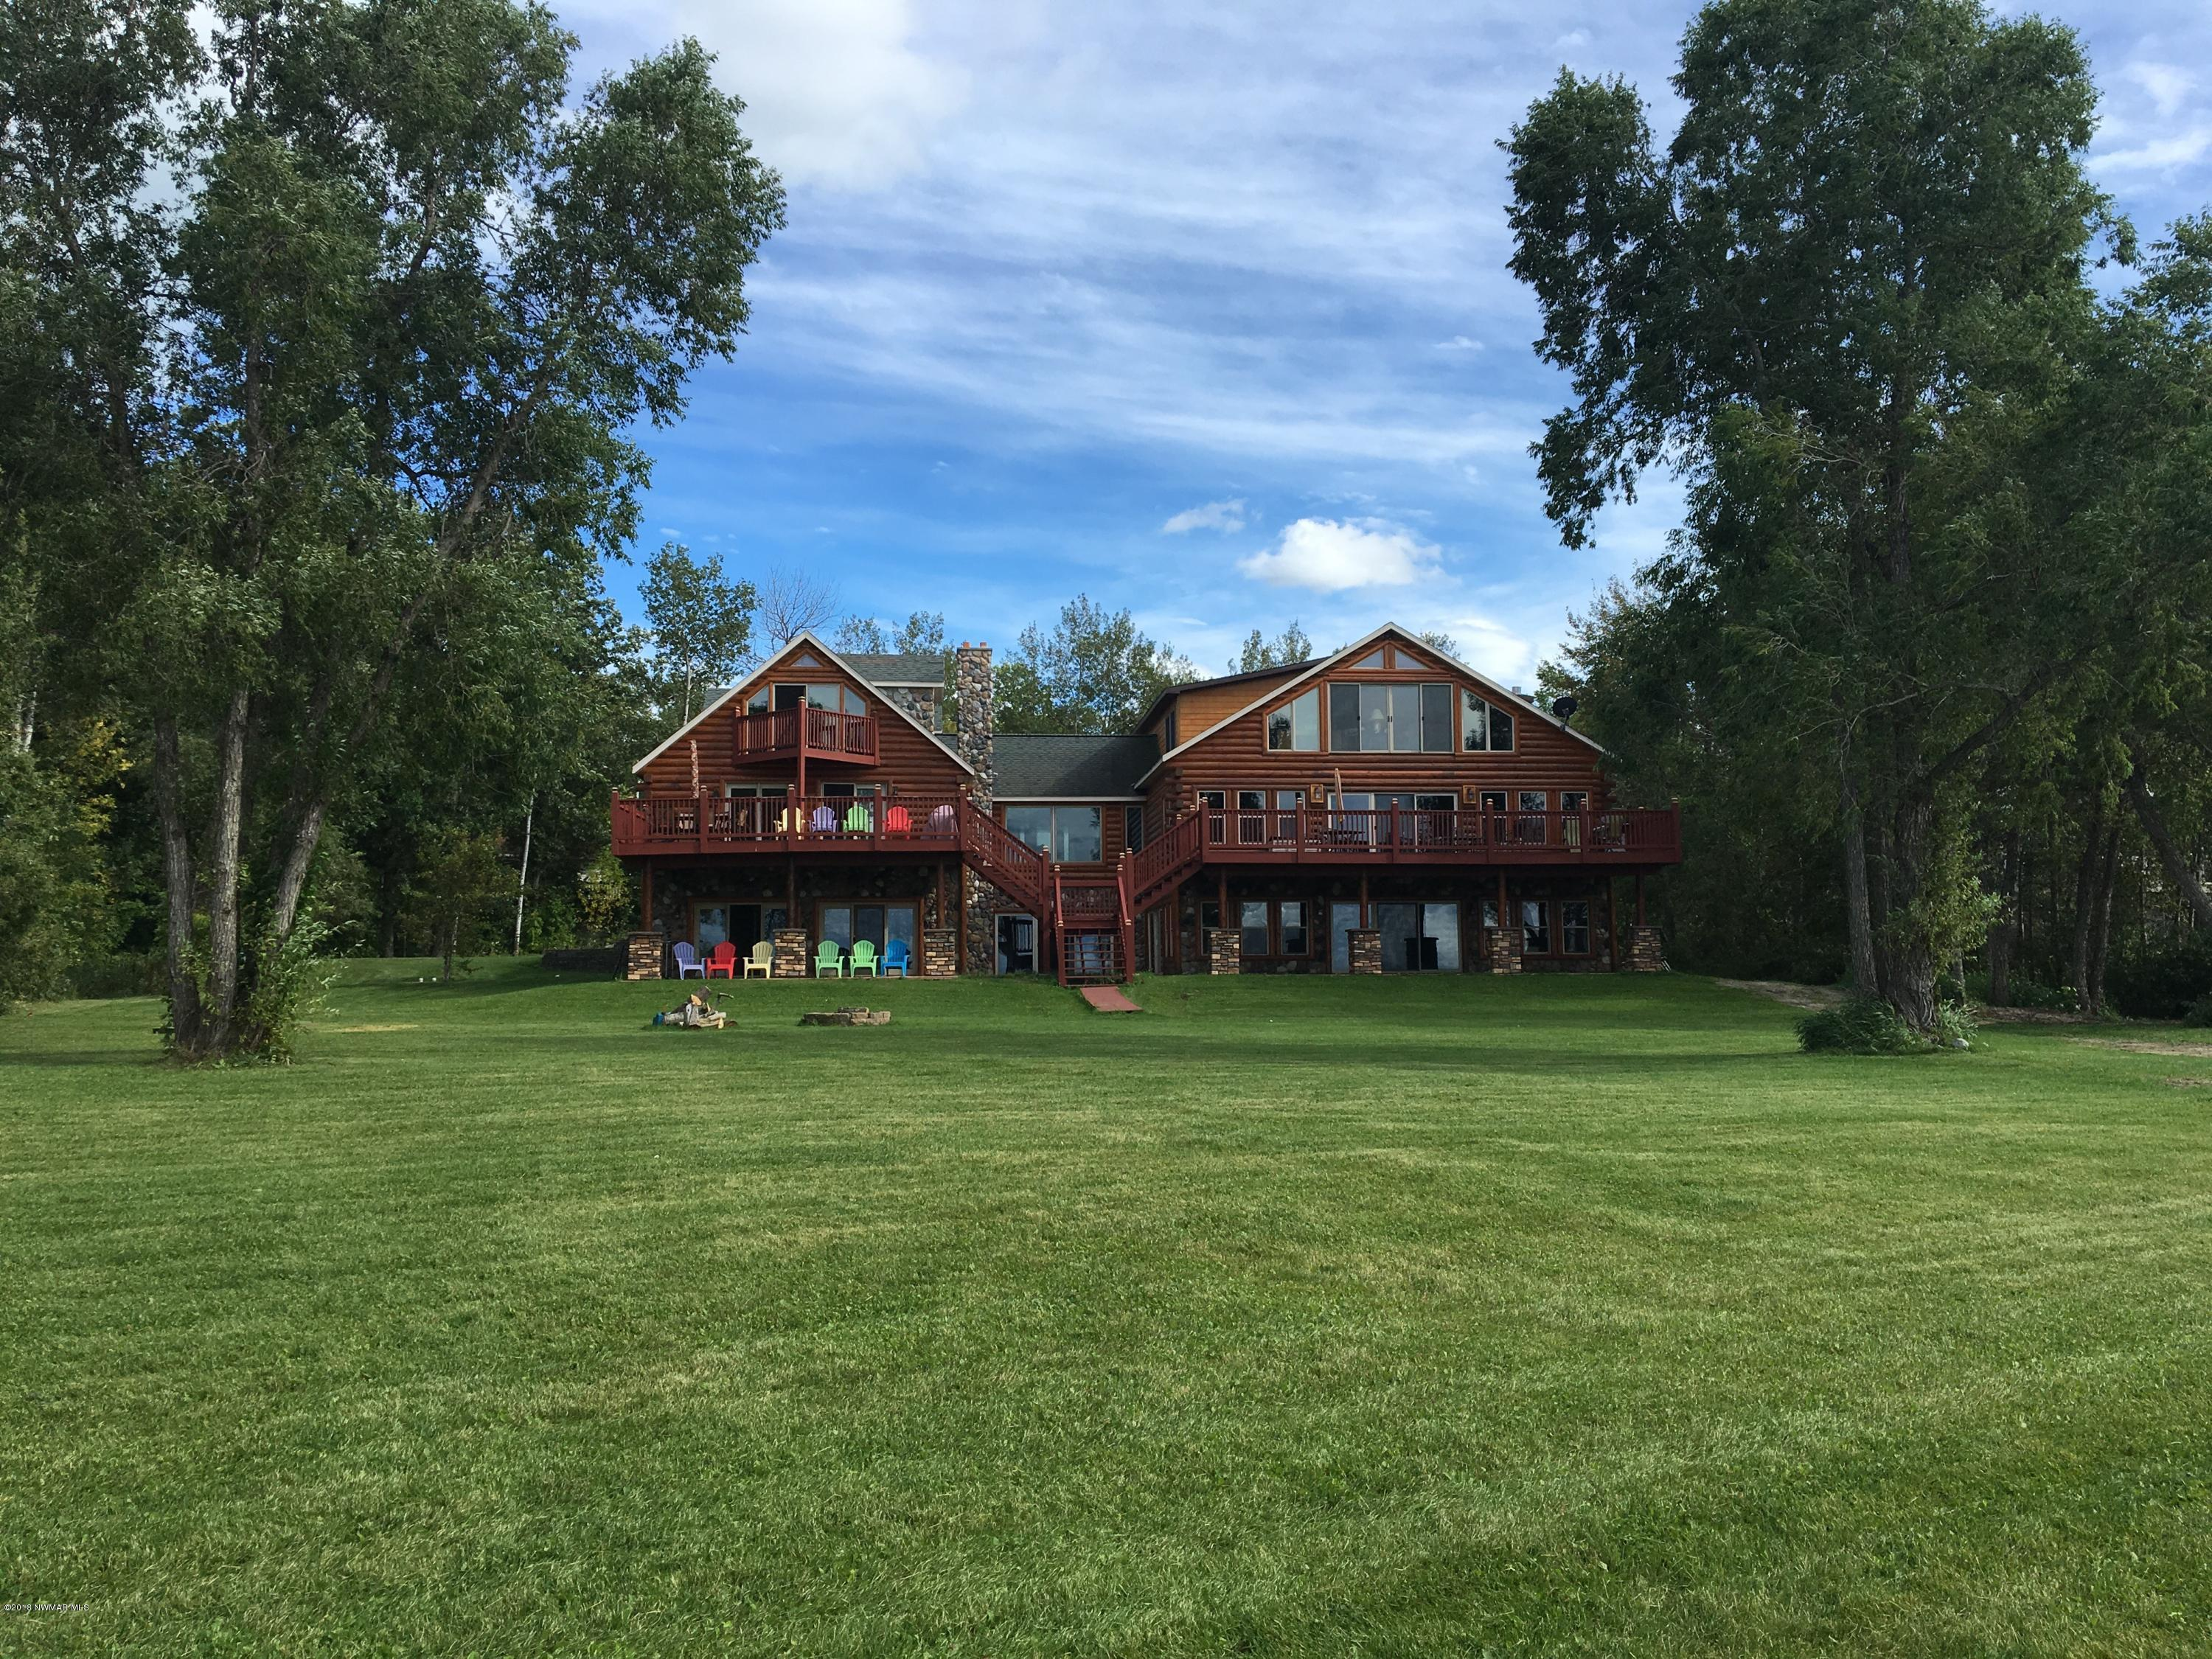 8989 Baywatch NW Property Photo - Walker, MN real estate listing